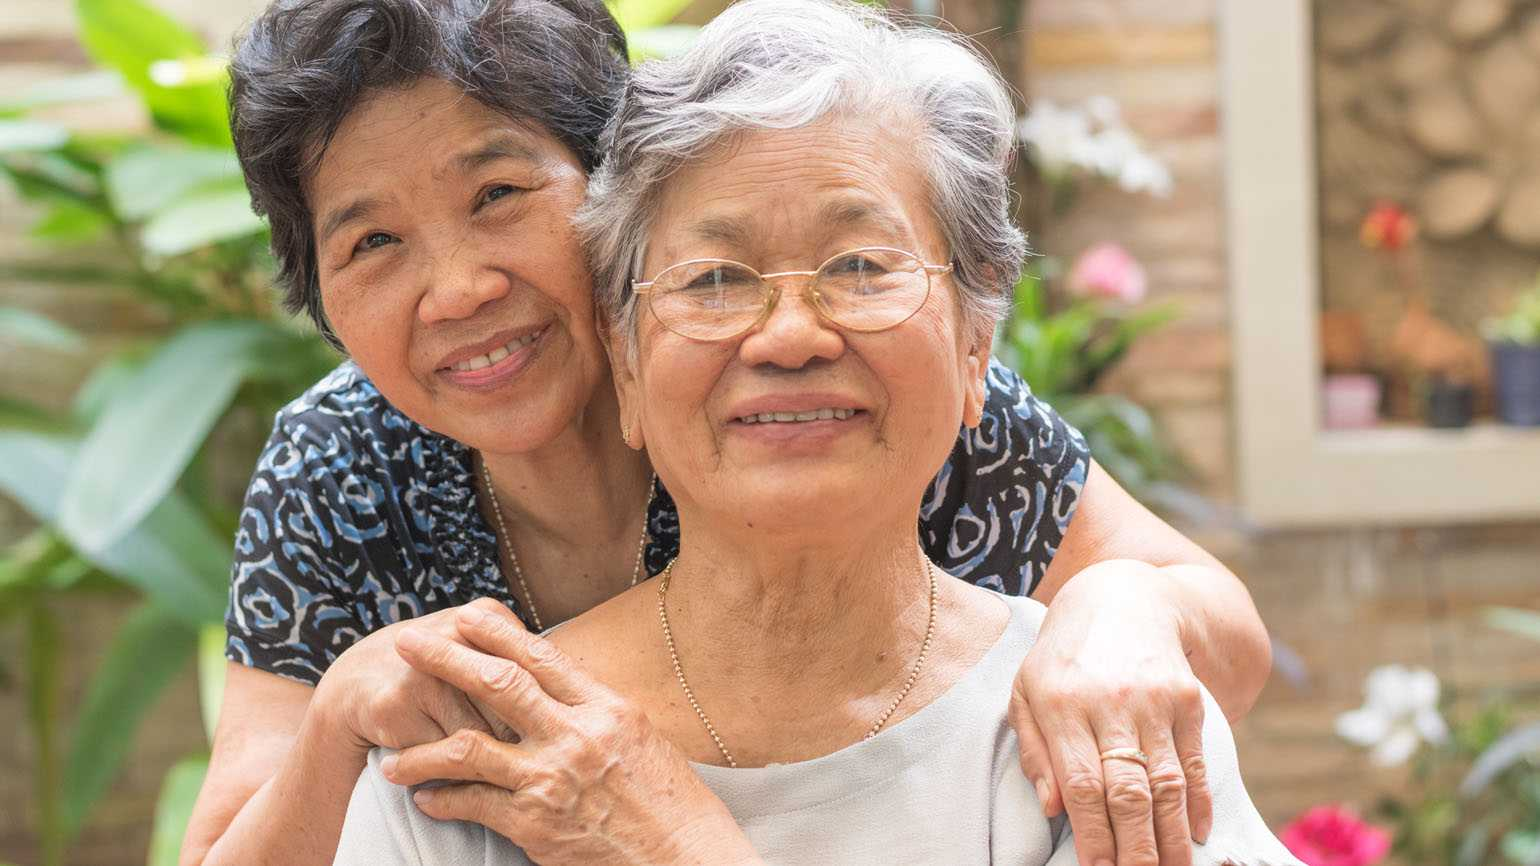 A family caregiver and her client; Getty Images